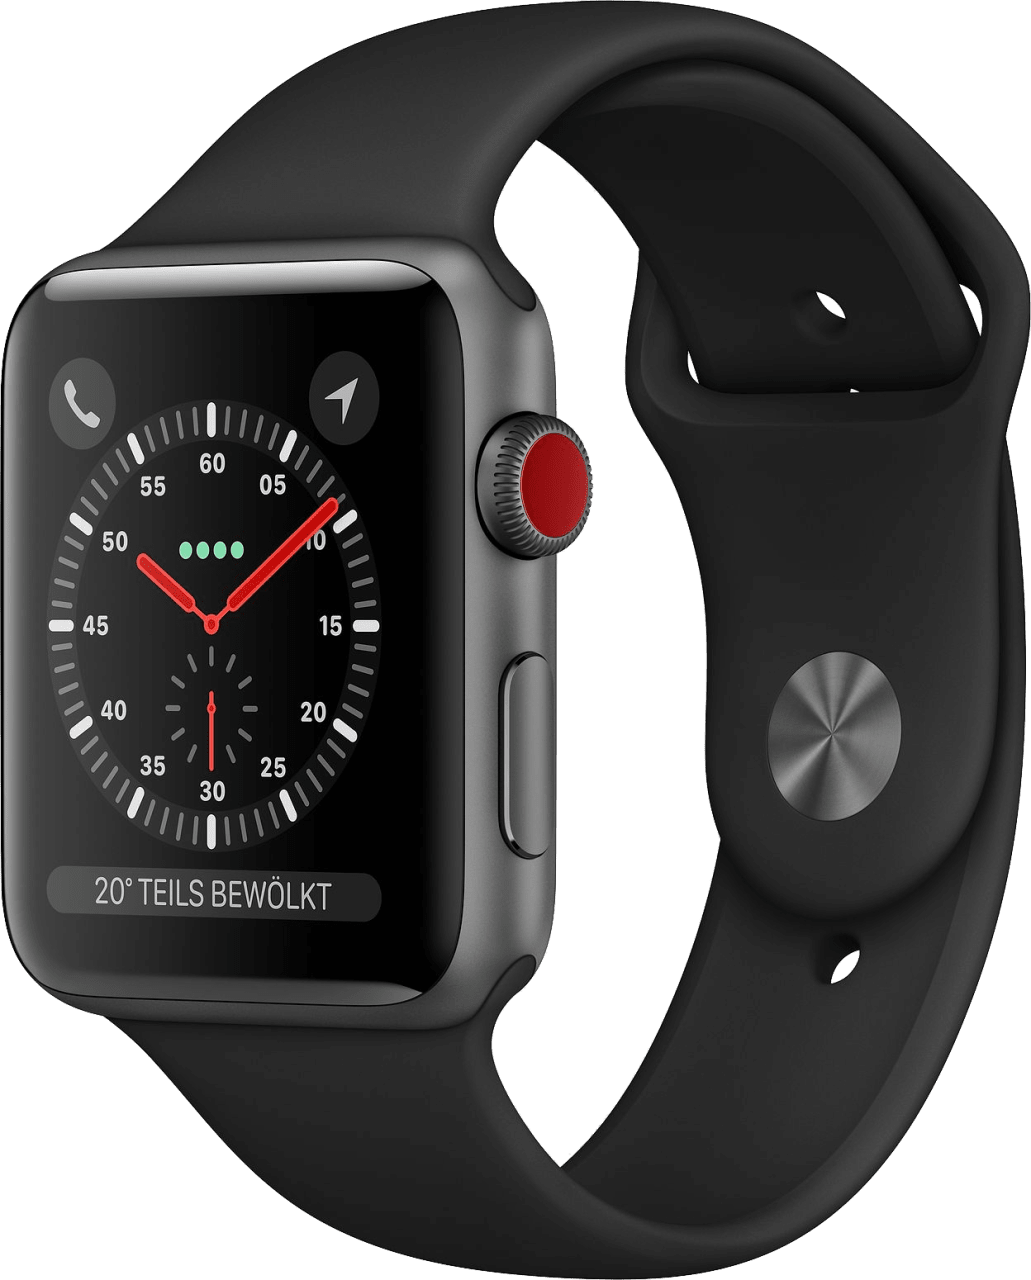 Schwarz Apple Watch Series 3 GPS + Cellular, 42mm.2